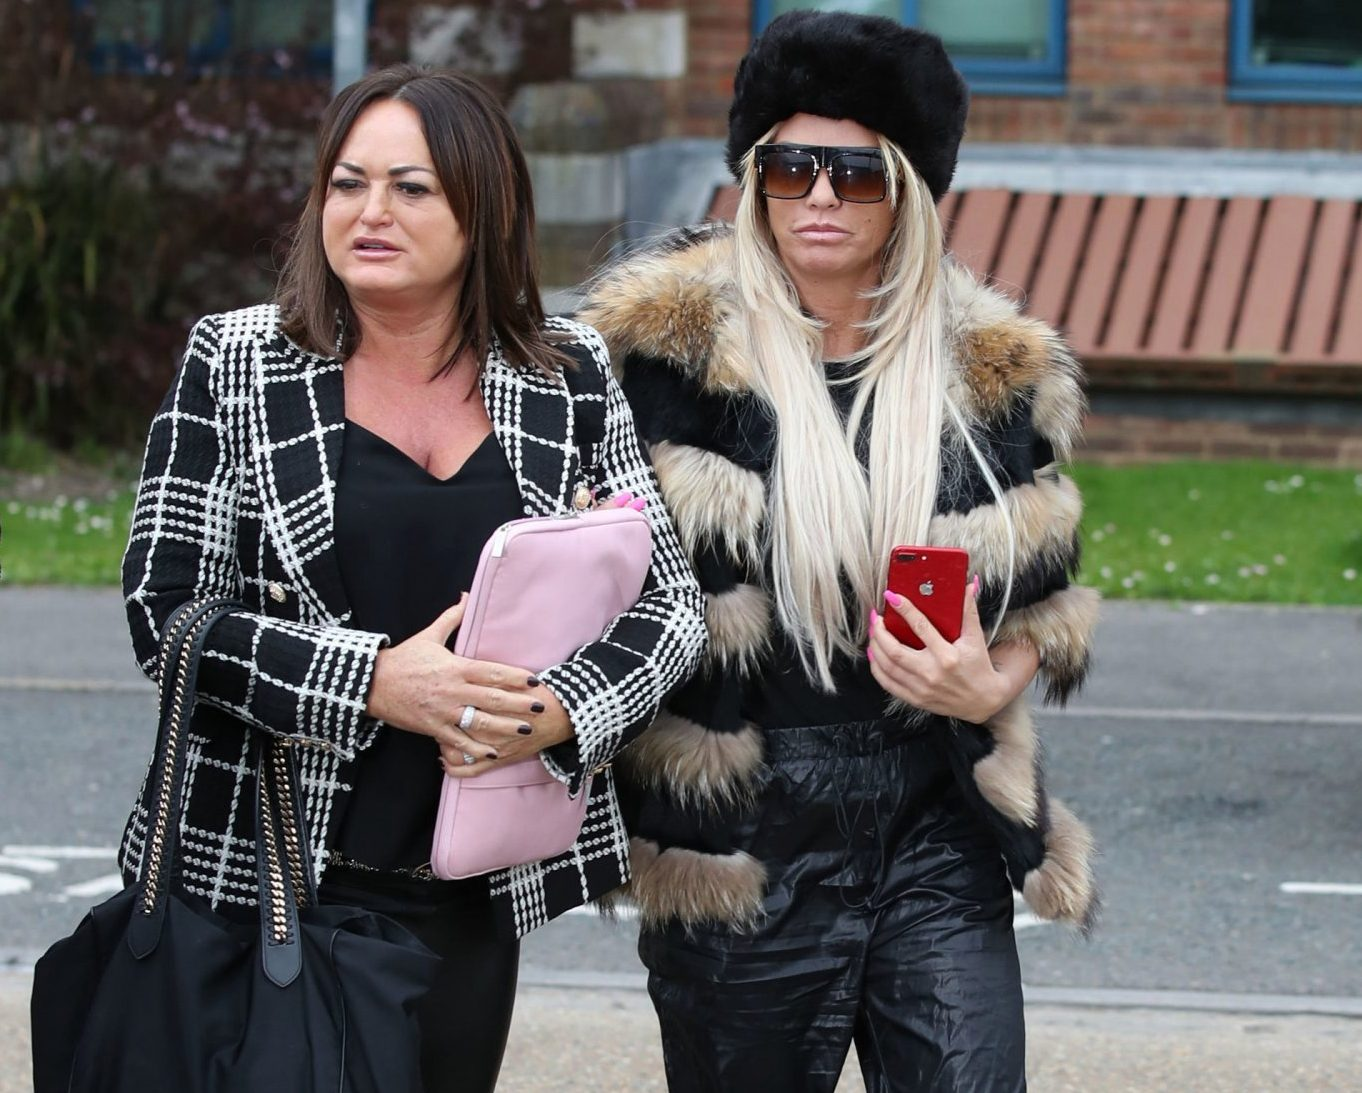 Katie Price rocks a whole lot of fur as she finally turns up to court